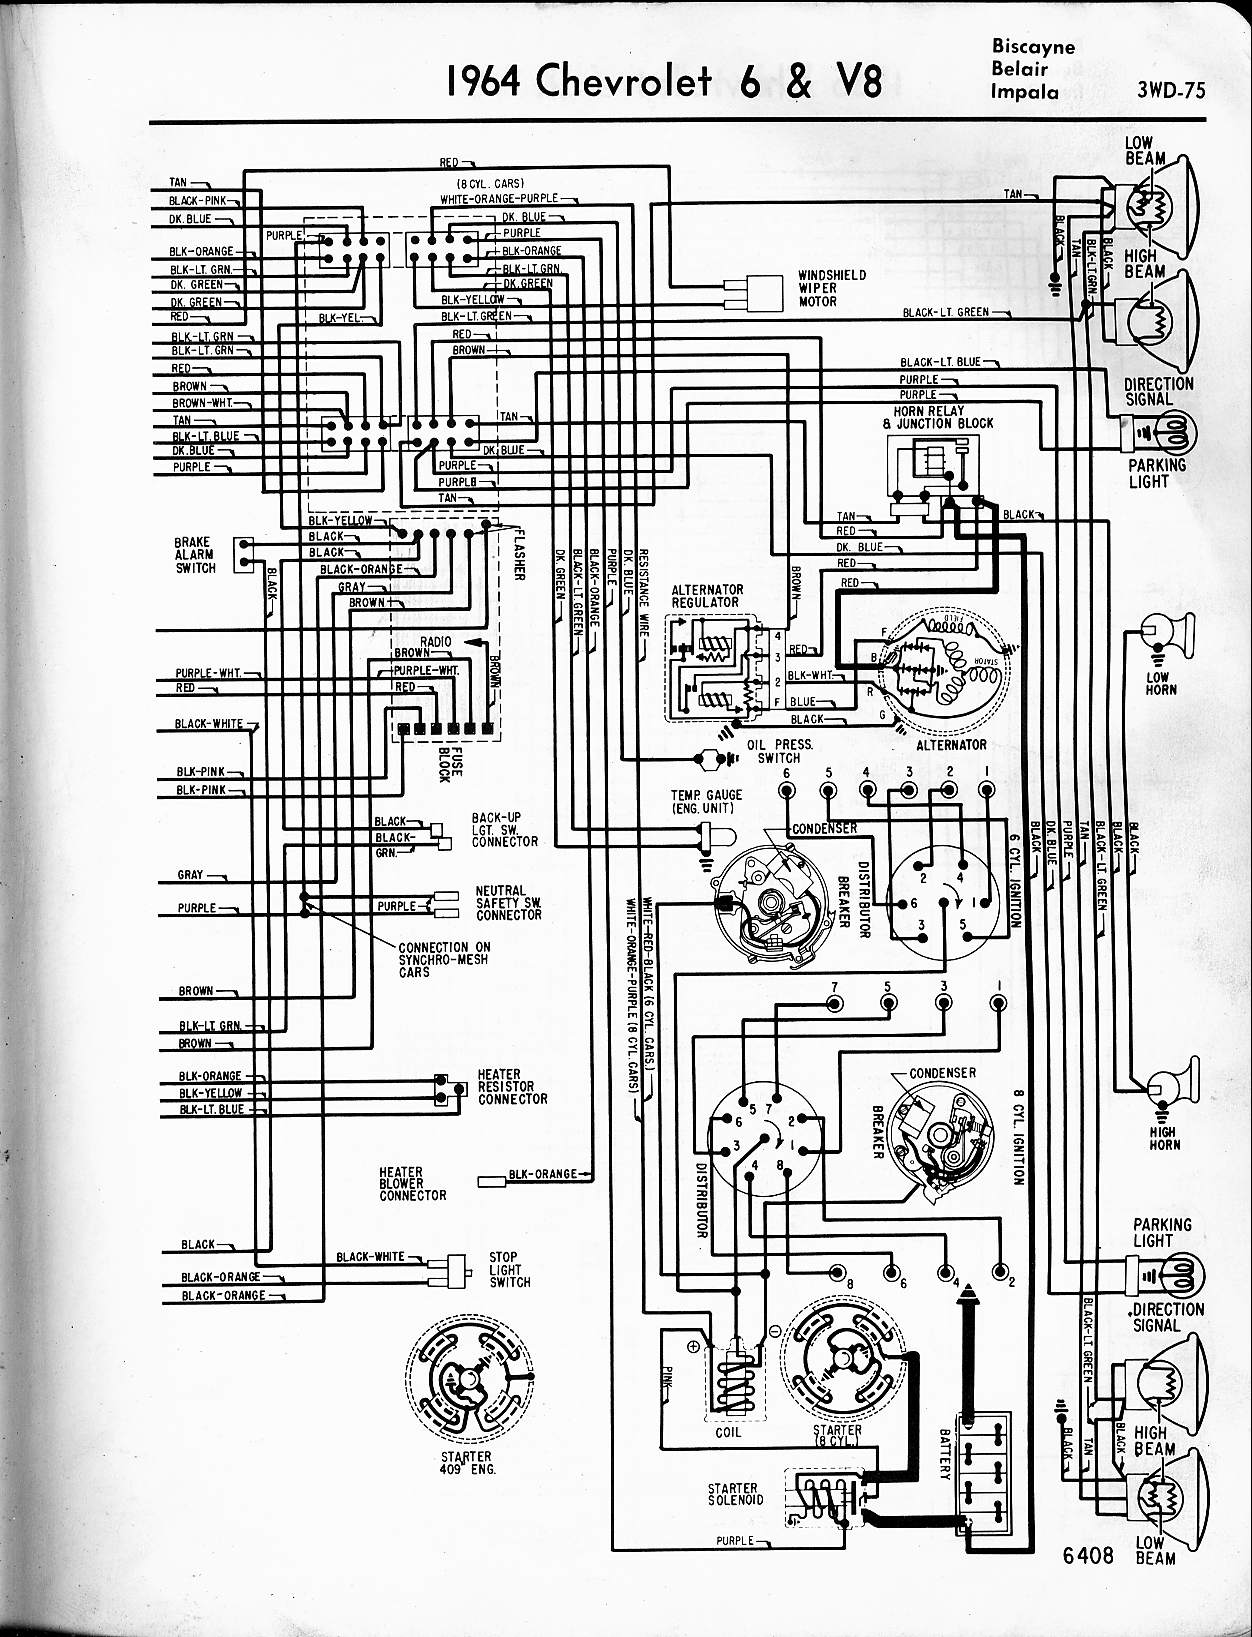 Fine Bmw Hp2 Wiring Diagram Wiring Diagram Wiring Cloud Ostrrenstrafr09Org